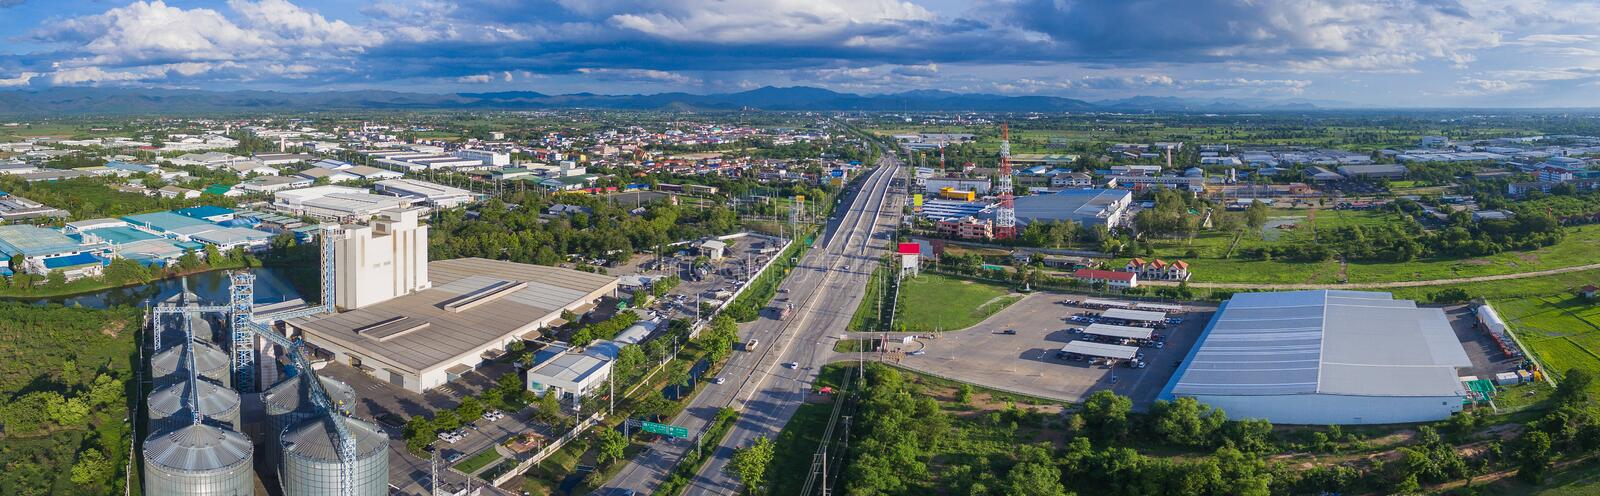 Aerial view of Industrial Estate northern thailand stock photos